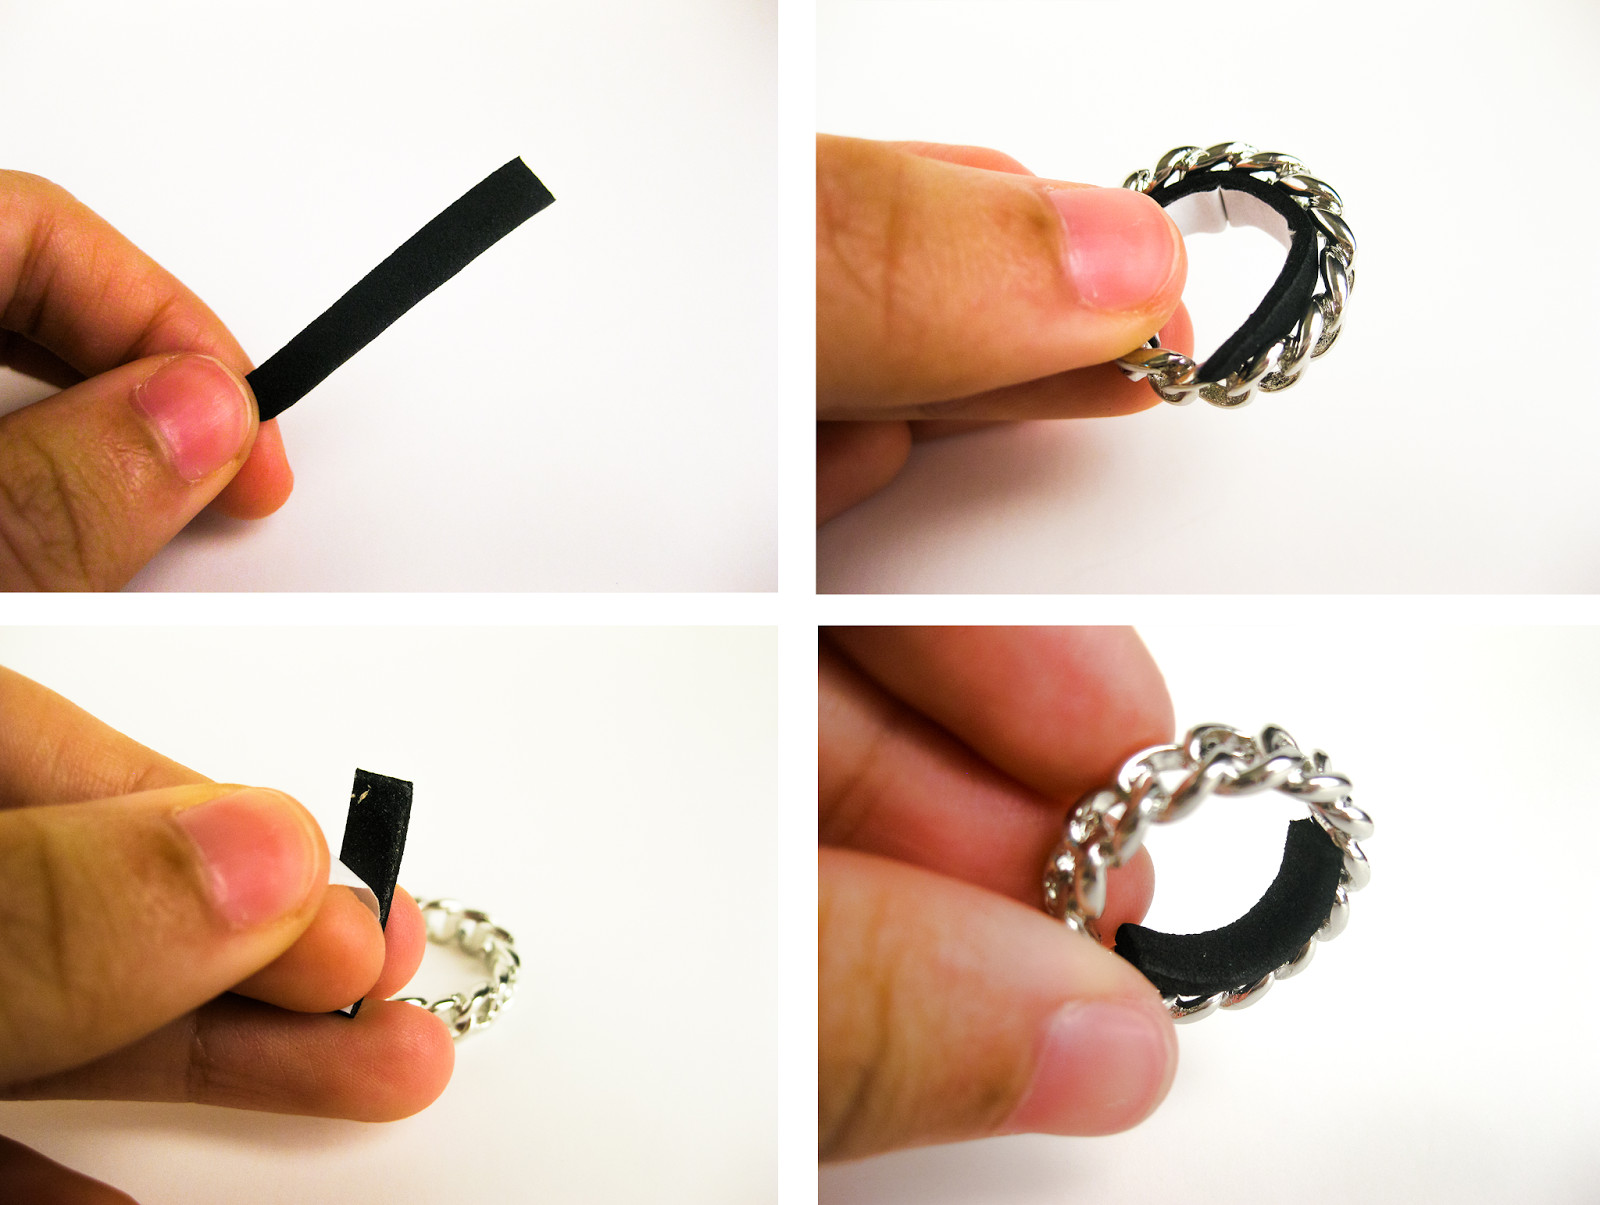 Best ideas about DIY Ring Sizer . Save or Pin Cafe Craftea DIY Now.